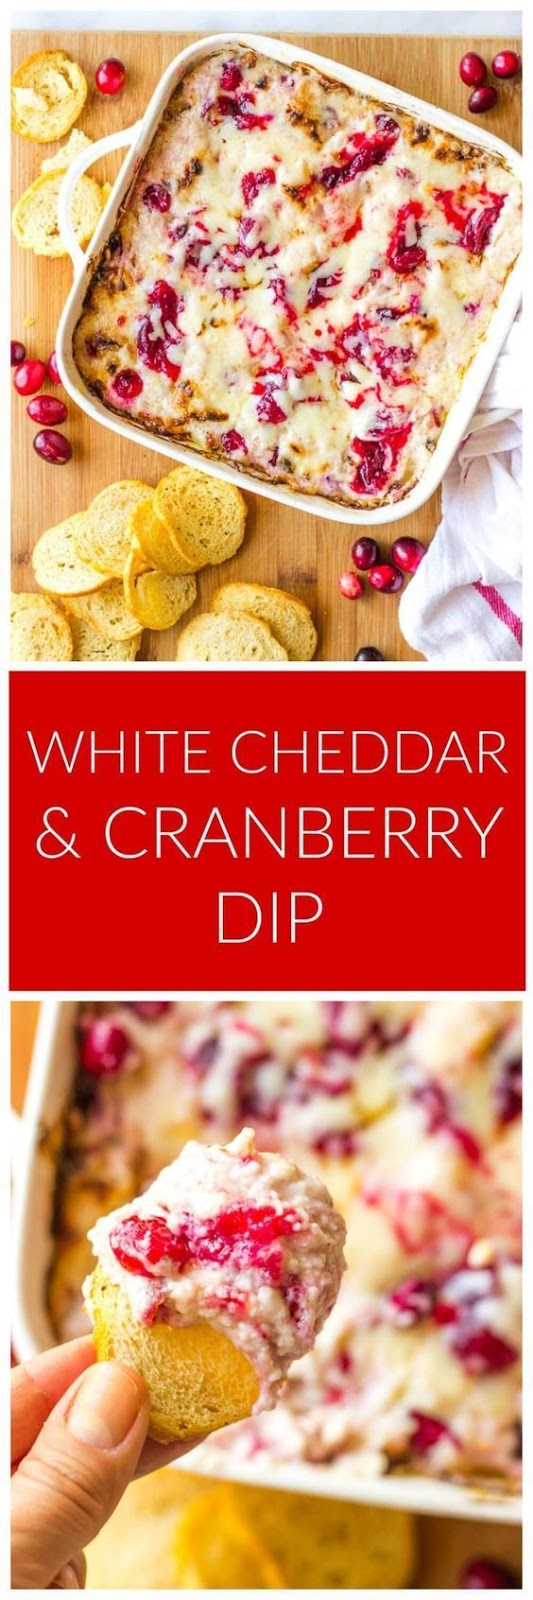 WHITE CHEDDAR AND CRANBERRY DIP